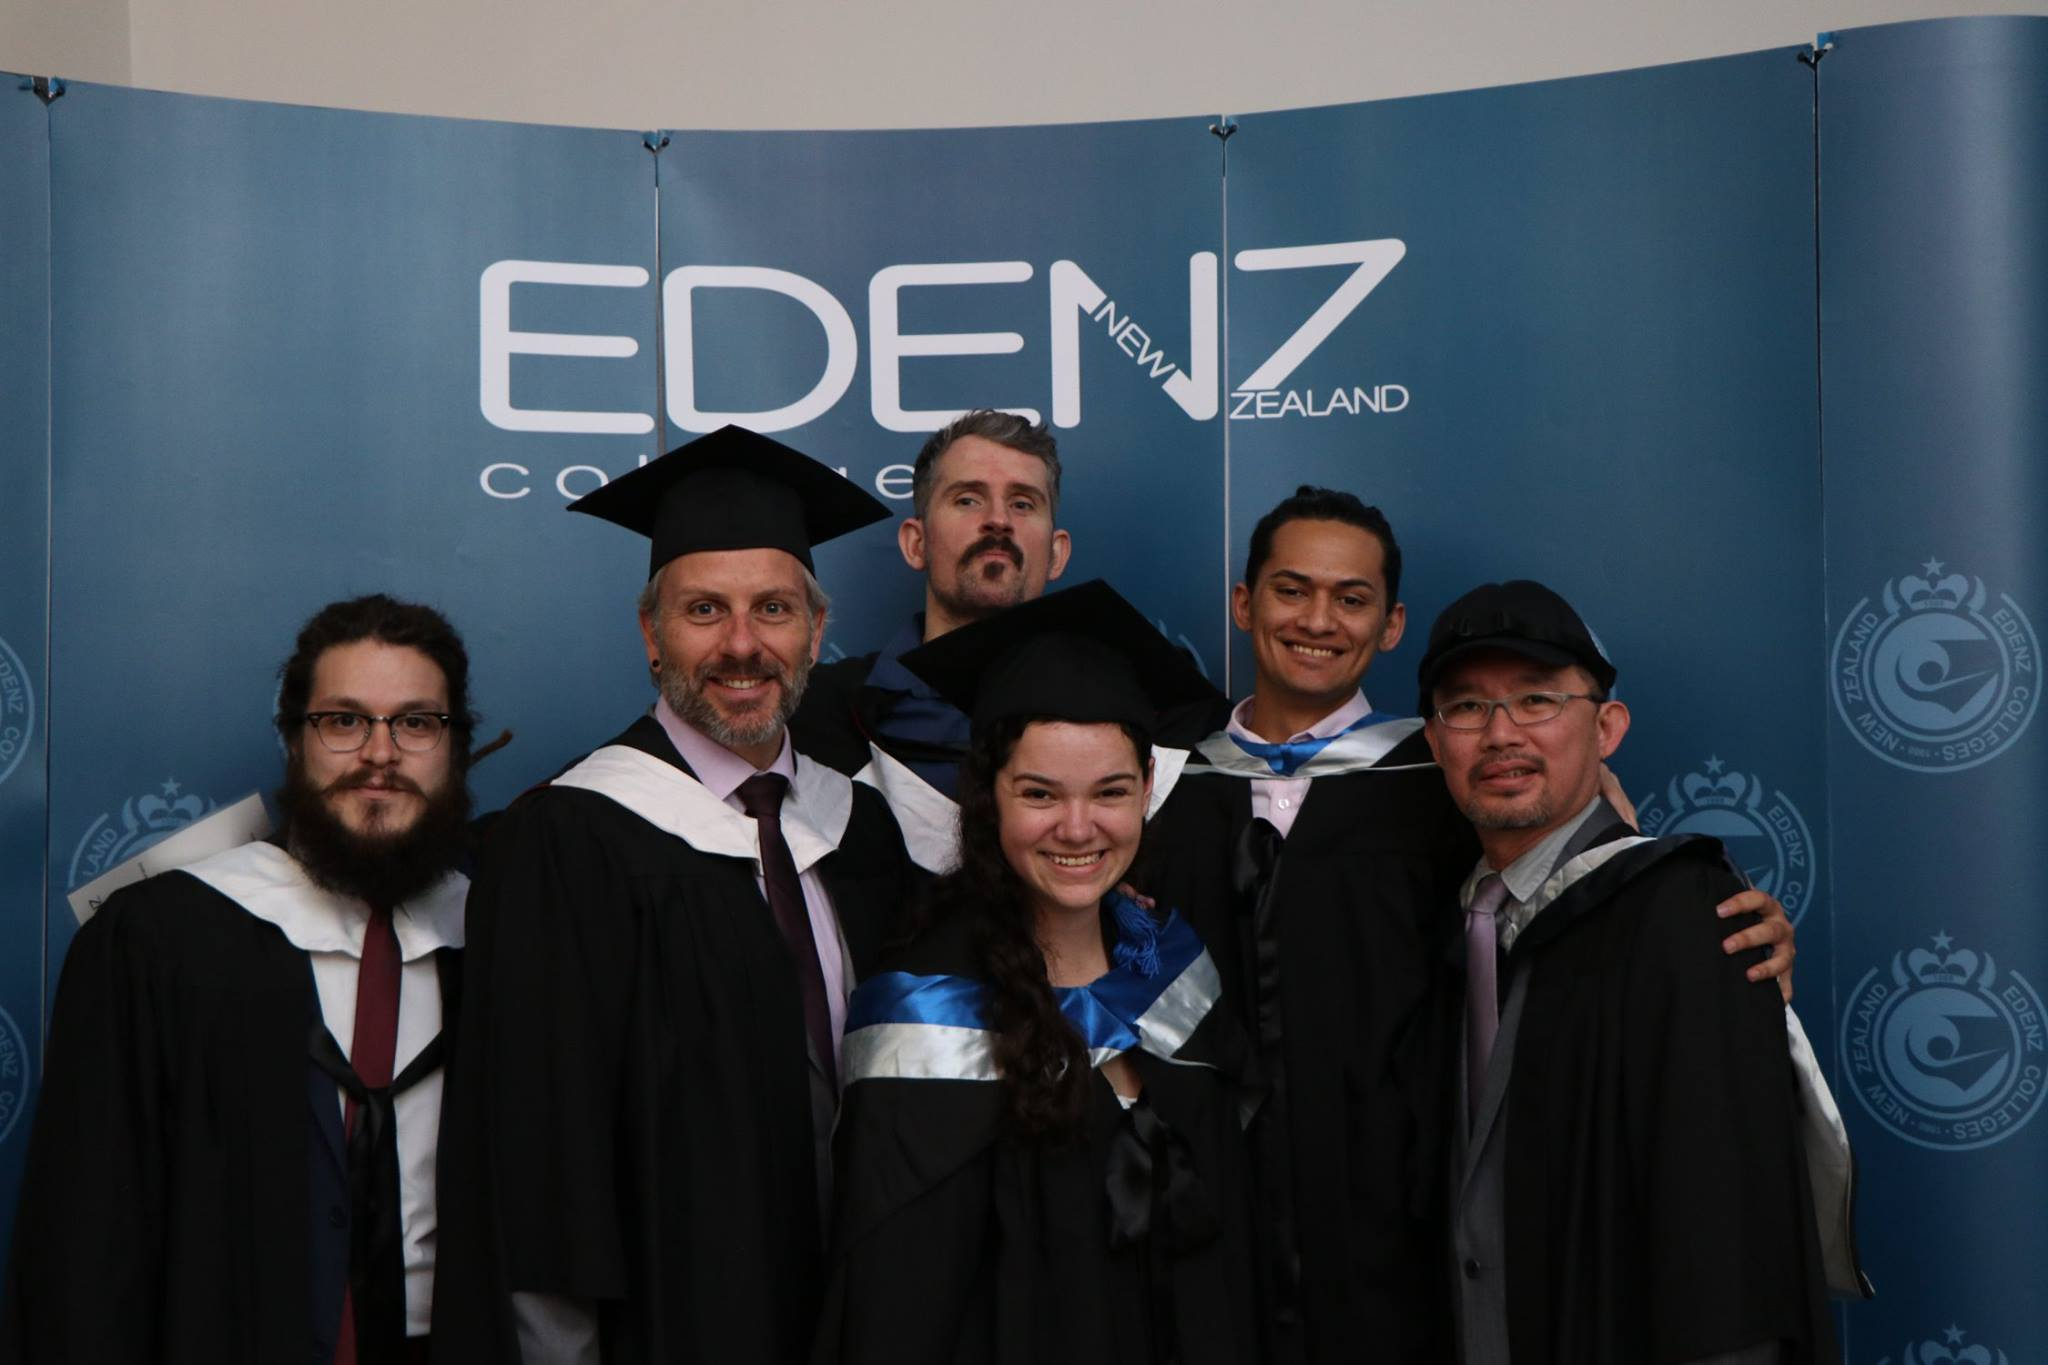 Евгений из Санкт-Петербурга о программе Software development level 7 в Edenz Colleges